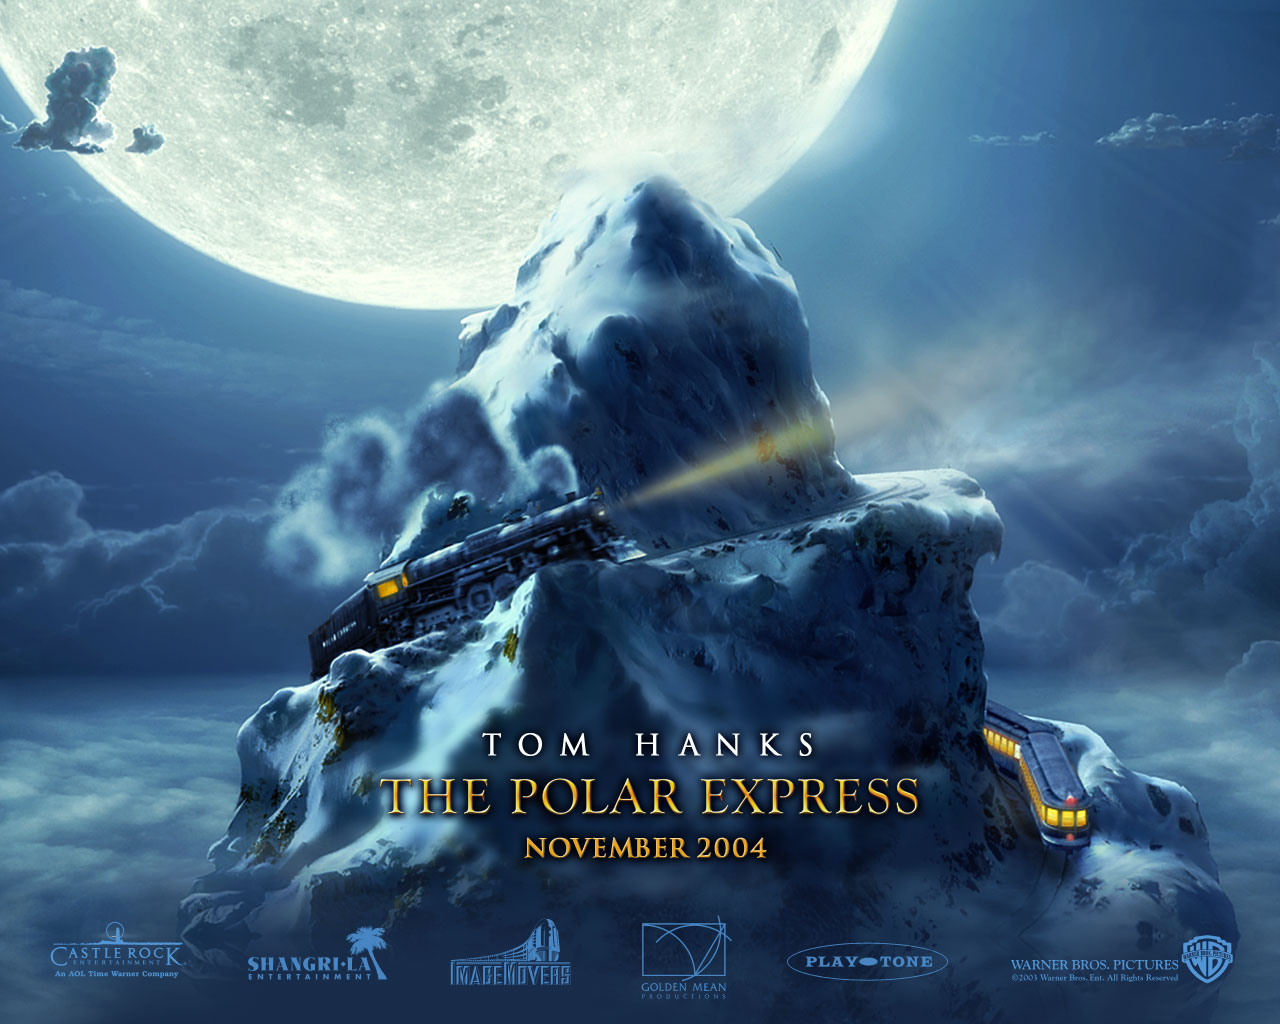 The Polar Express IMAX 3D